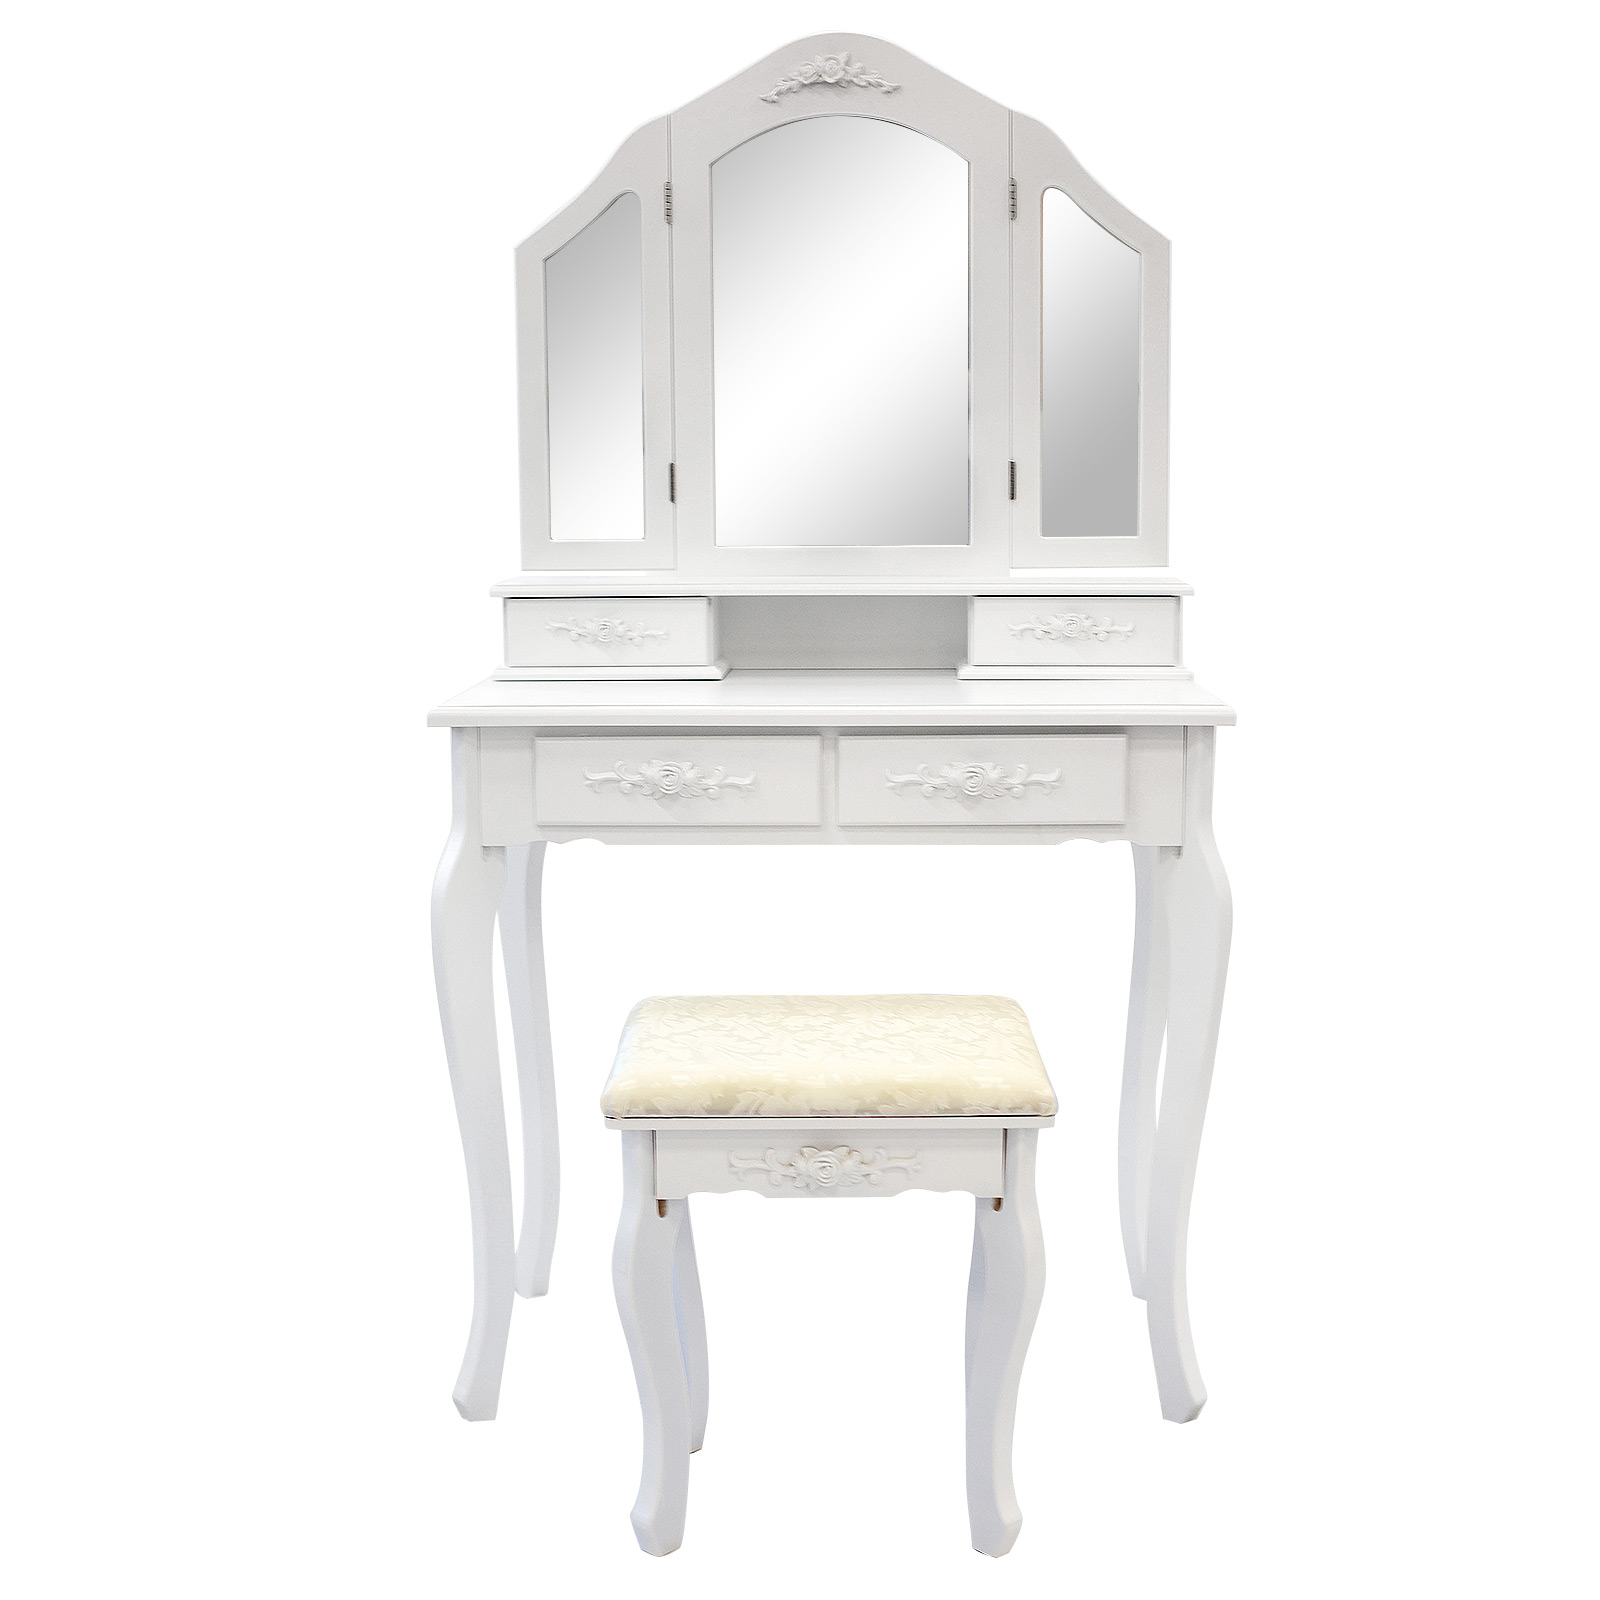 3 Mirrors 4 Drawers Dressing Table - DIANA WHITE